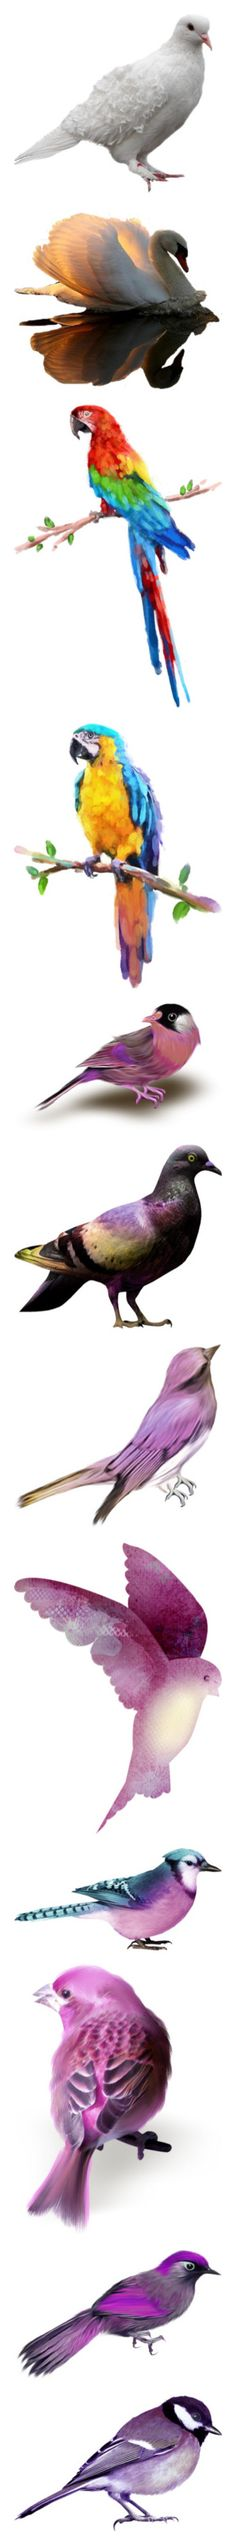 """""""Birds 2"""" by leaff88 ❤ liked on Polyvore featuring animals, birds, creatures, purple, aves, pigeon, filler, detail, embellishment and backgrounds"""